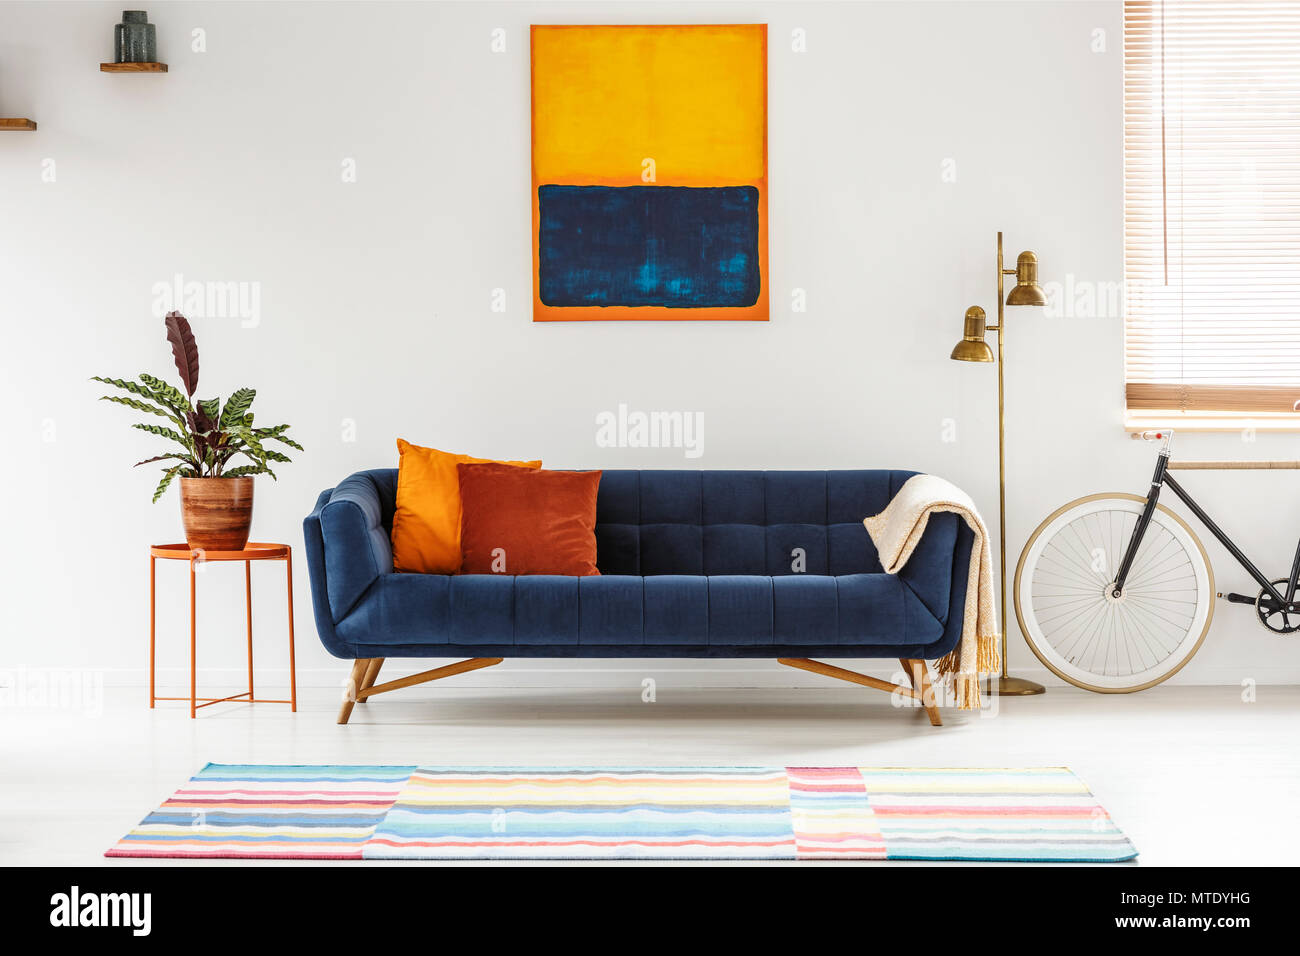 Painting Above Sofa Painting Above Sofa Stock Photos & Painting Above Sofa